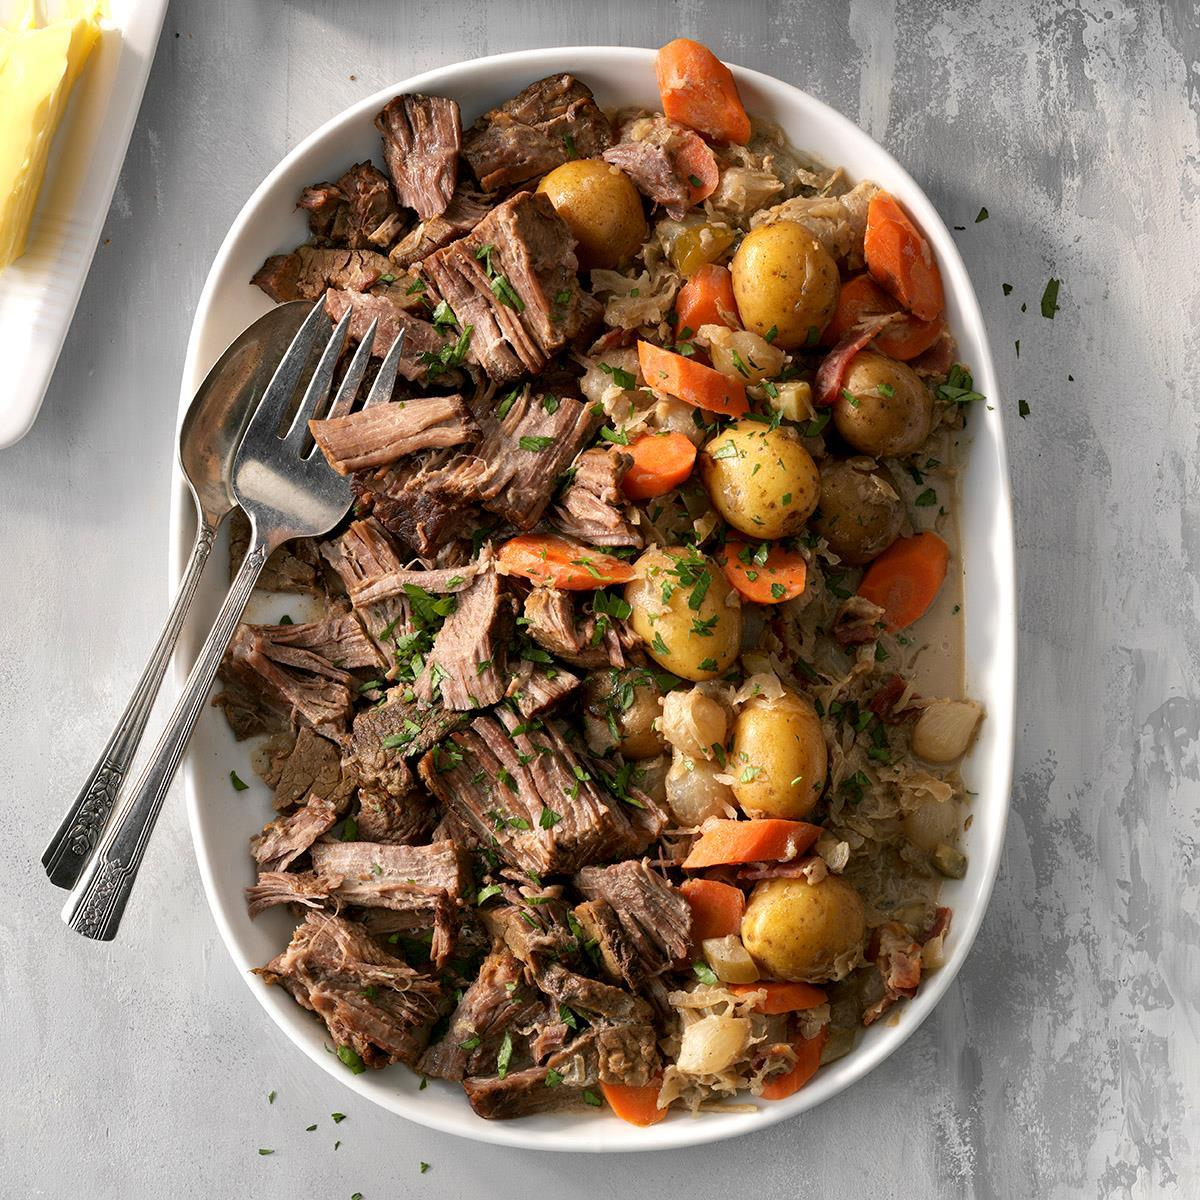 Grampa's German-Style Pot Roast